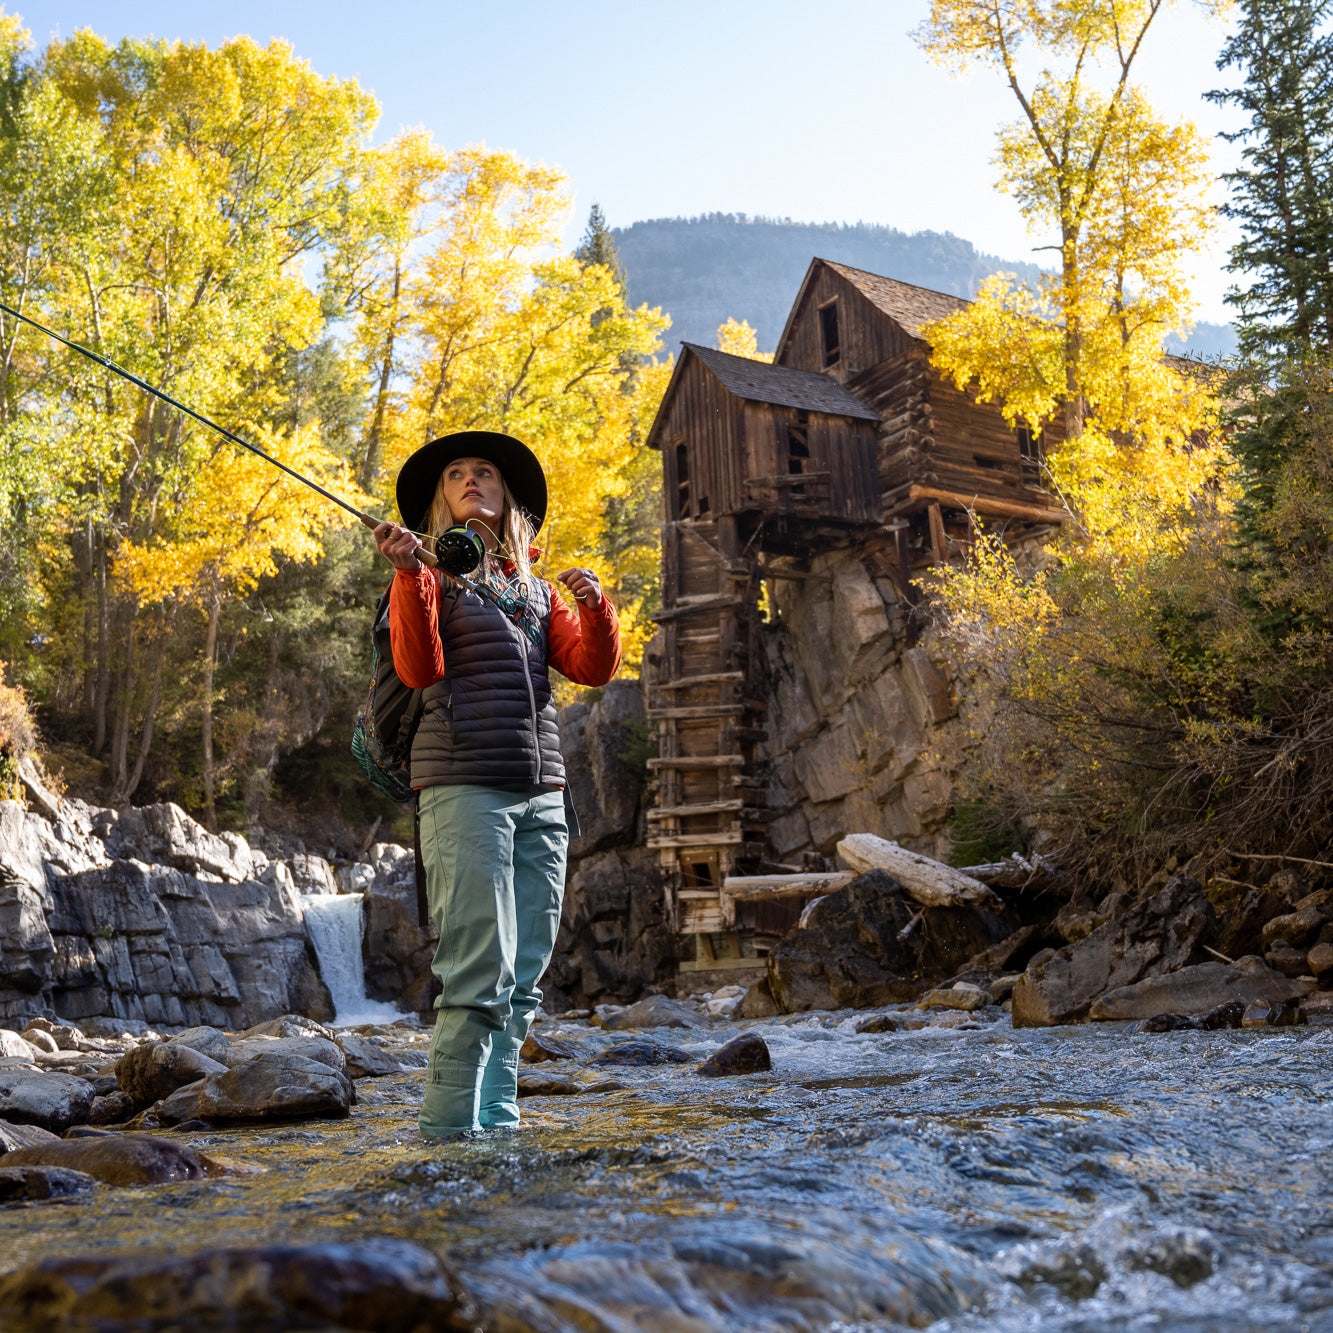 Home in the Roaring Fork